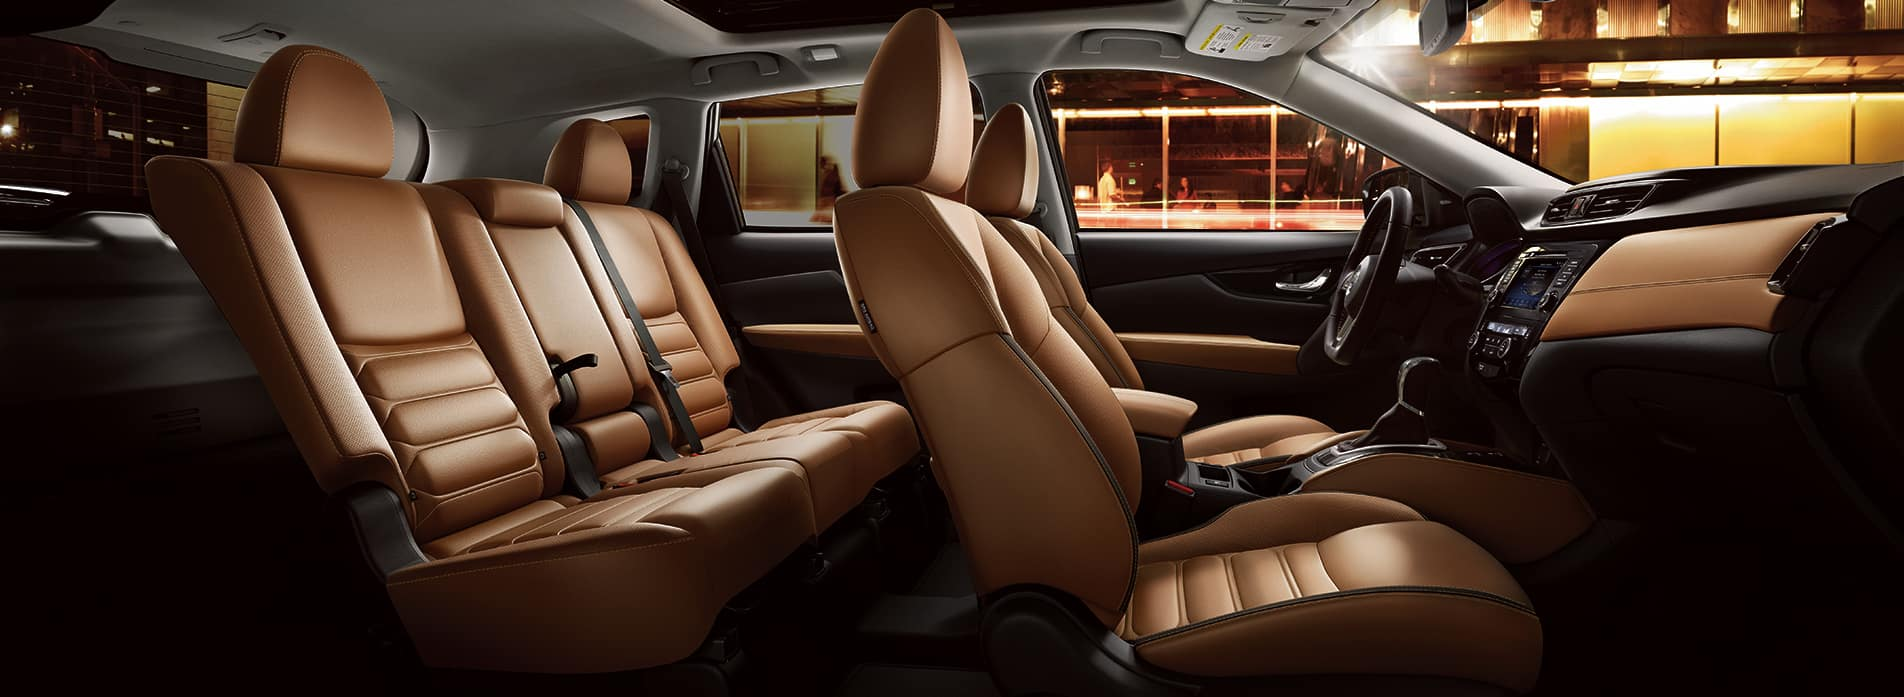 The 2020 Rogue model features at Hanover Nissan in Hanover   The brown leather interior of the 2020 rogue